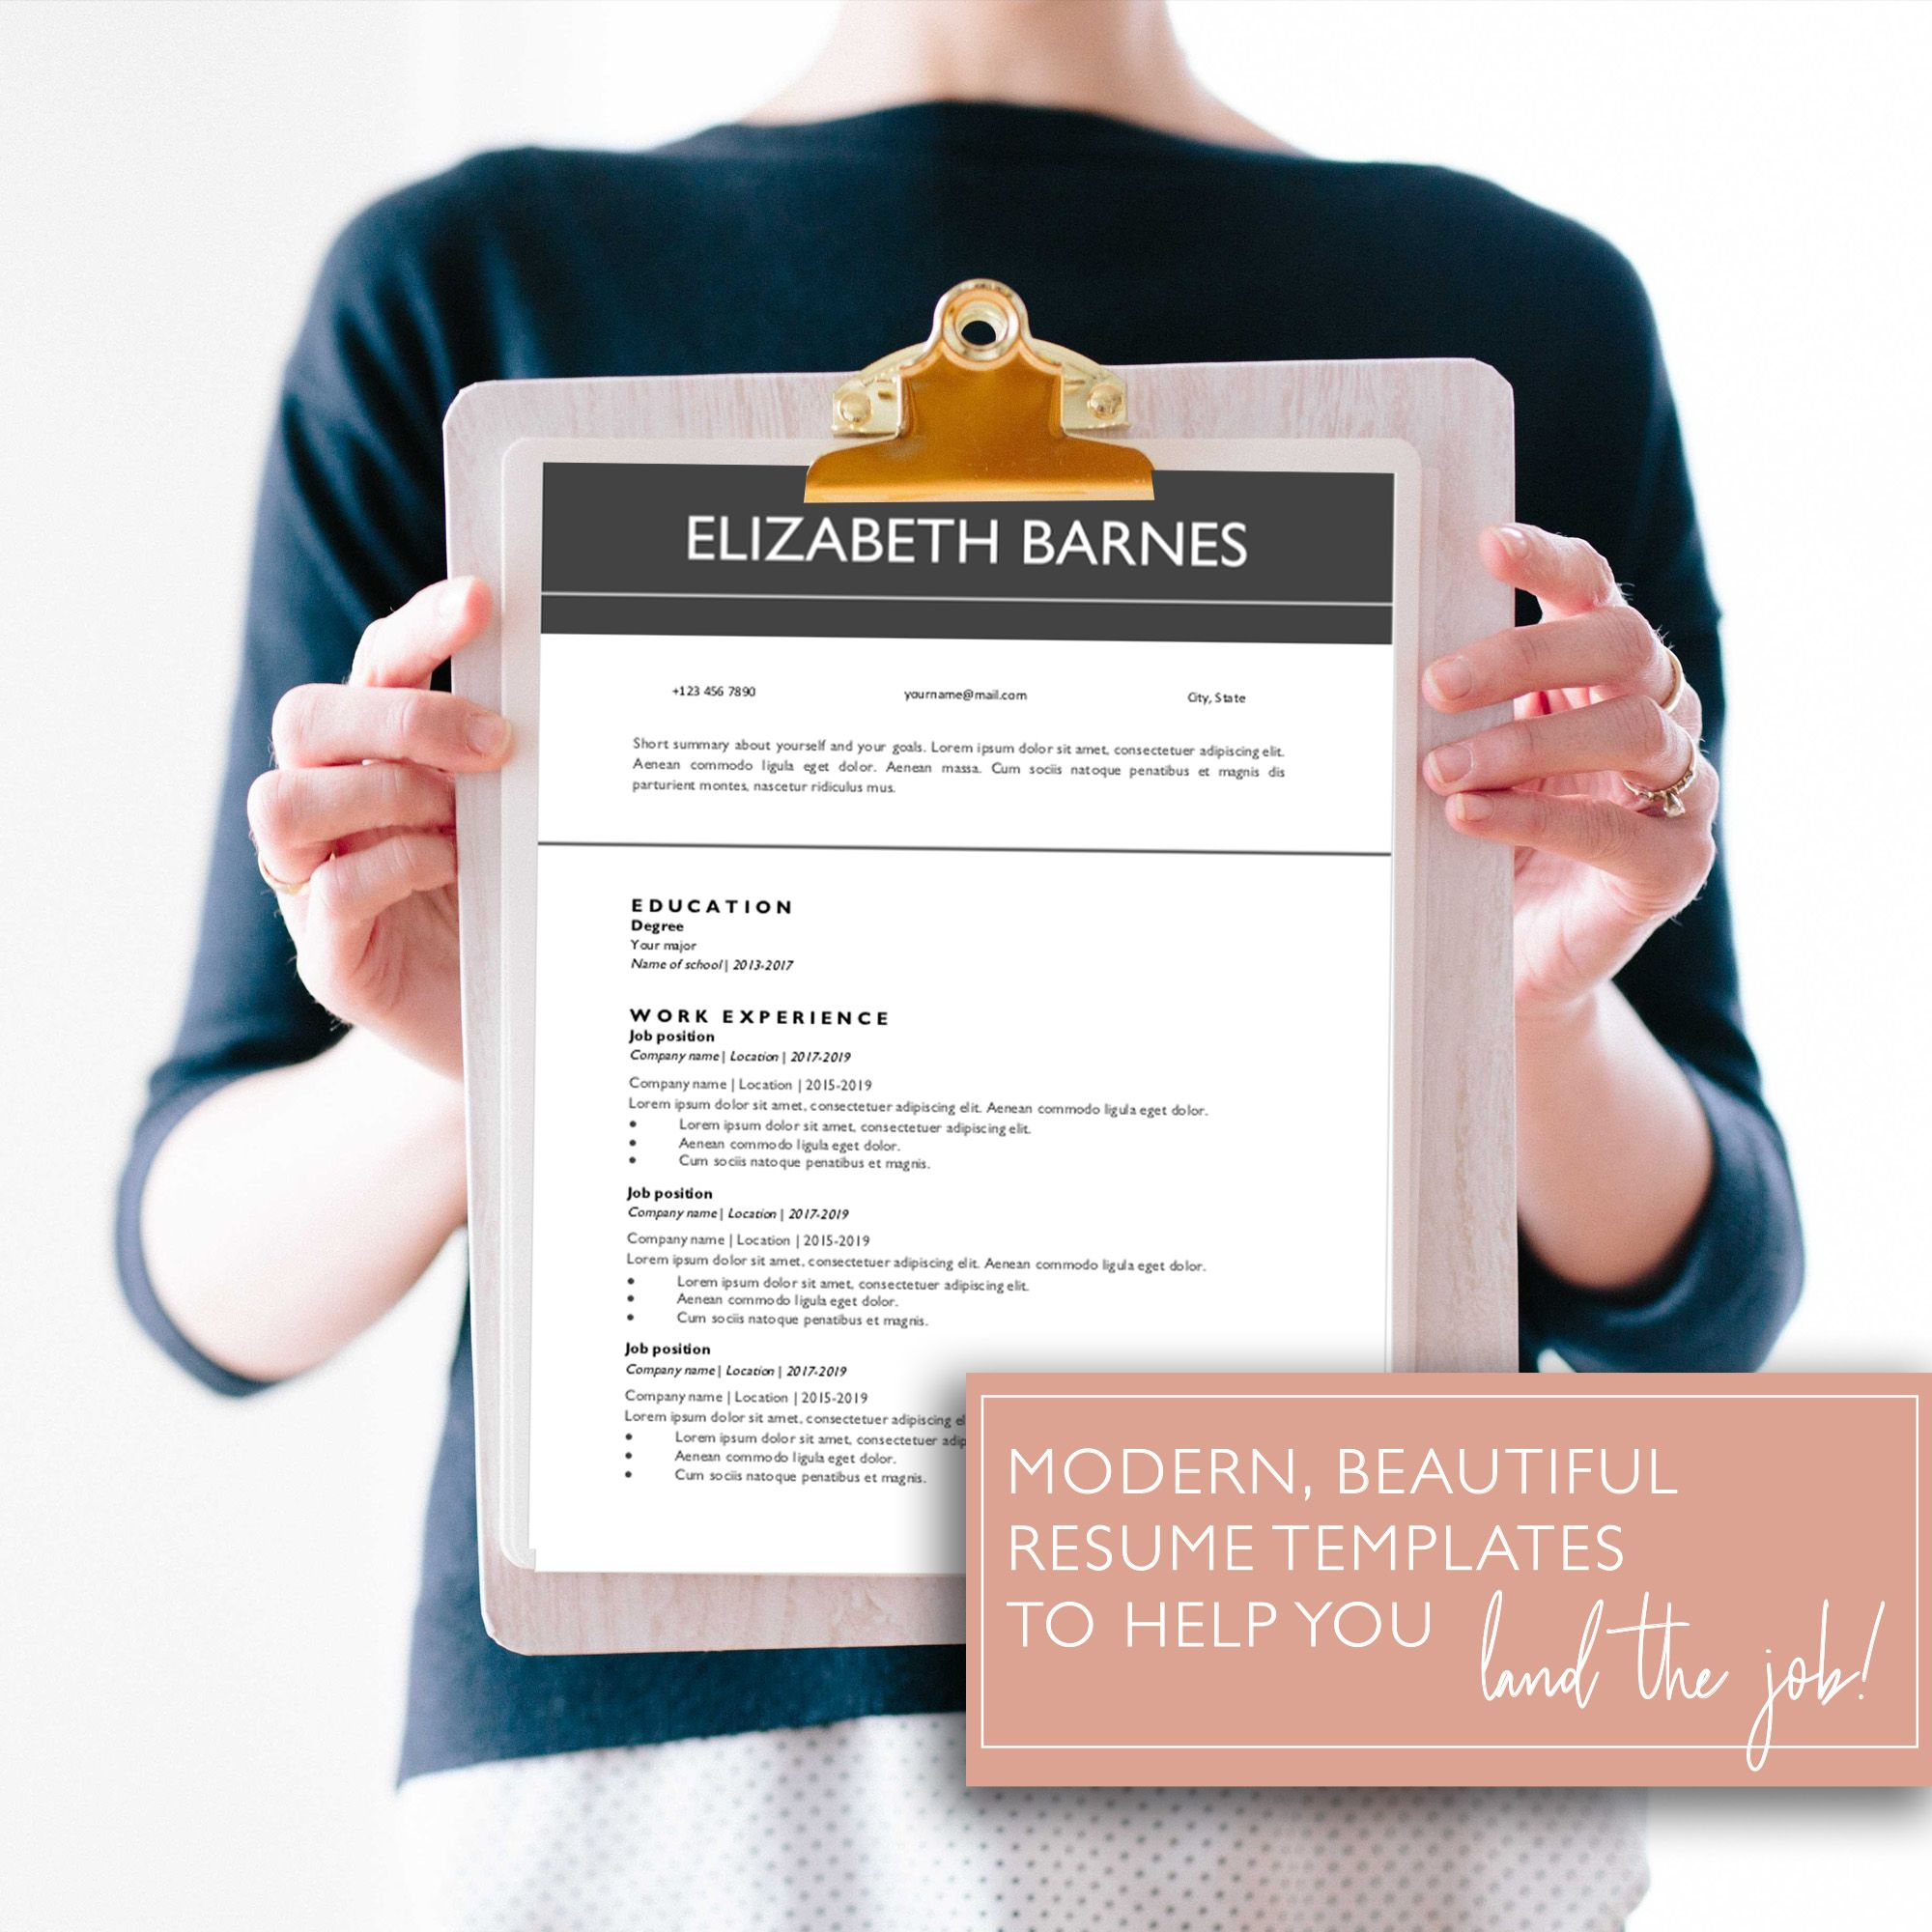 Google Docs Resume Template. Easily download and edit this